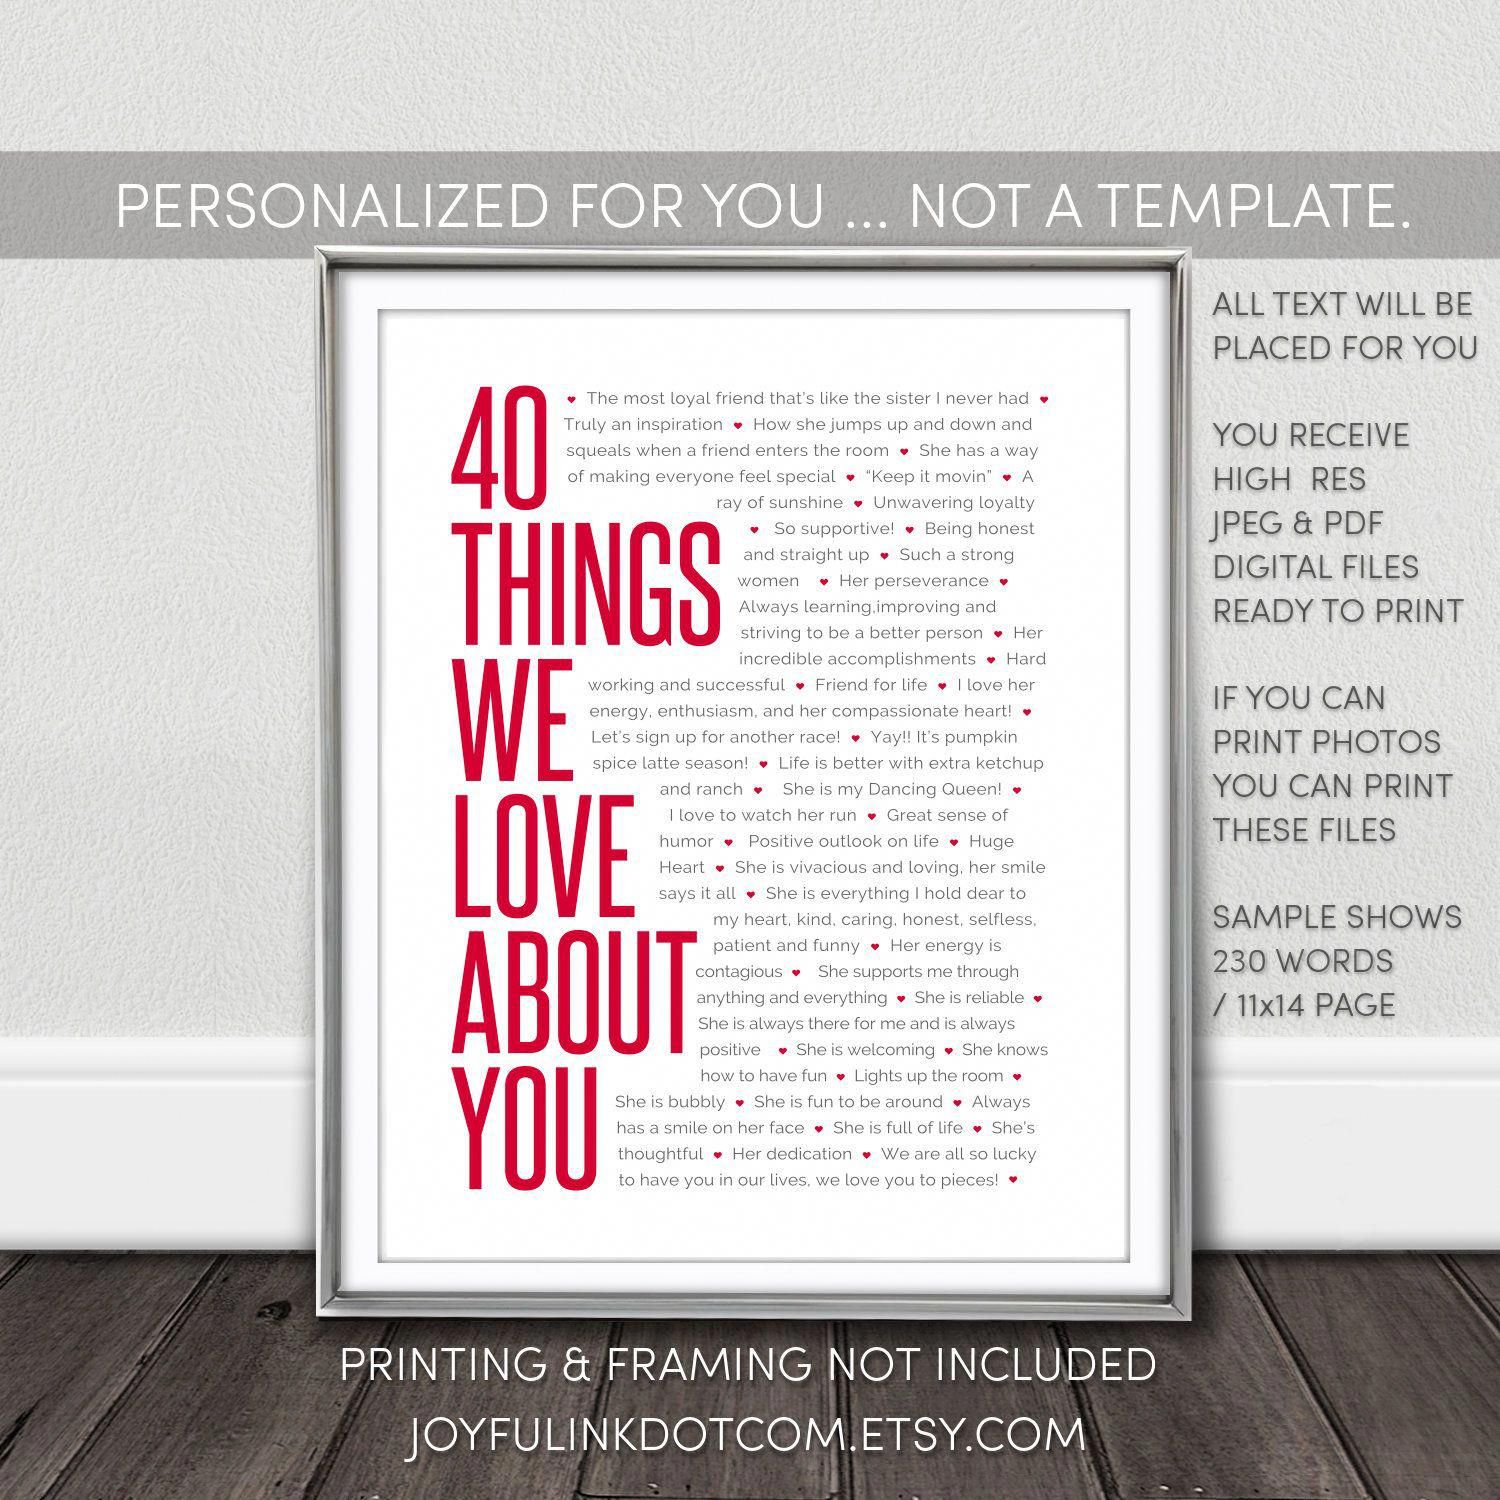 40 Things We Love About You Printable Personalized 40th Birthday Gifts For Women Not A Templat 40th Birthday Gifts For Women 40th Birthday Gifts 40th Birthday